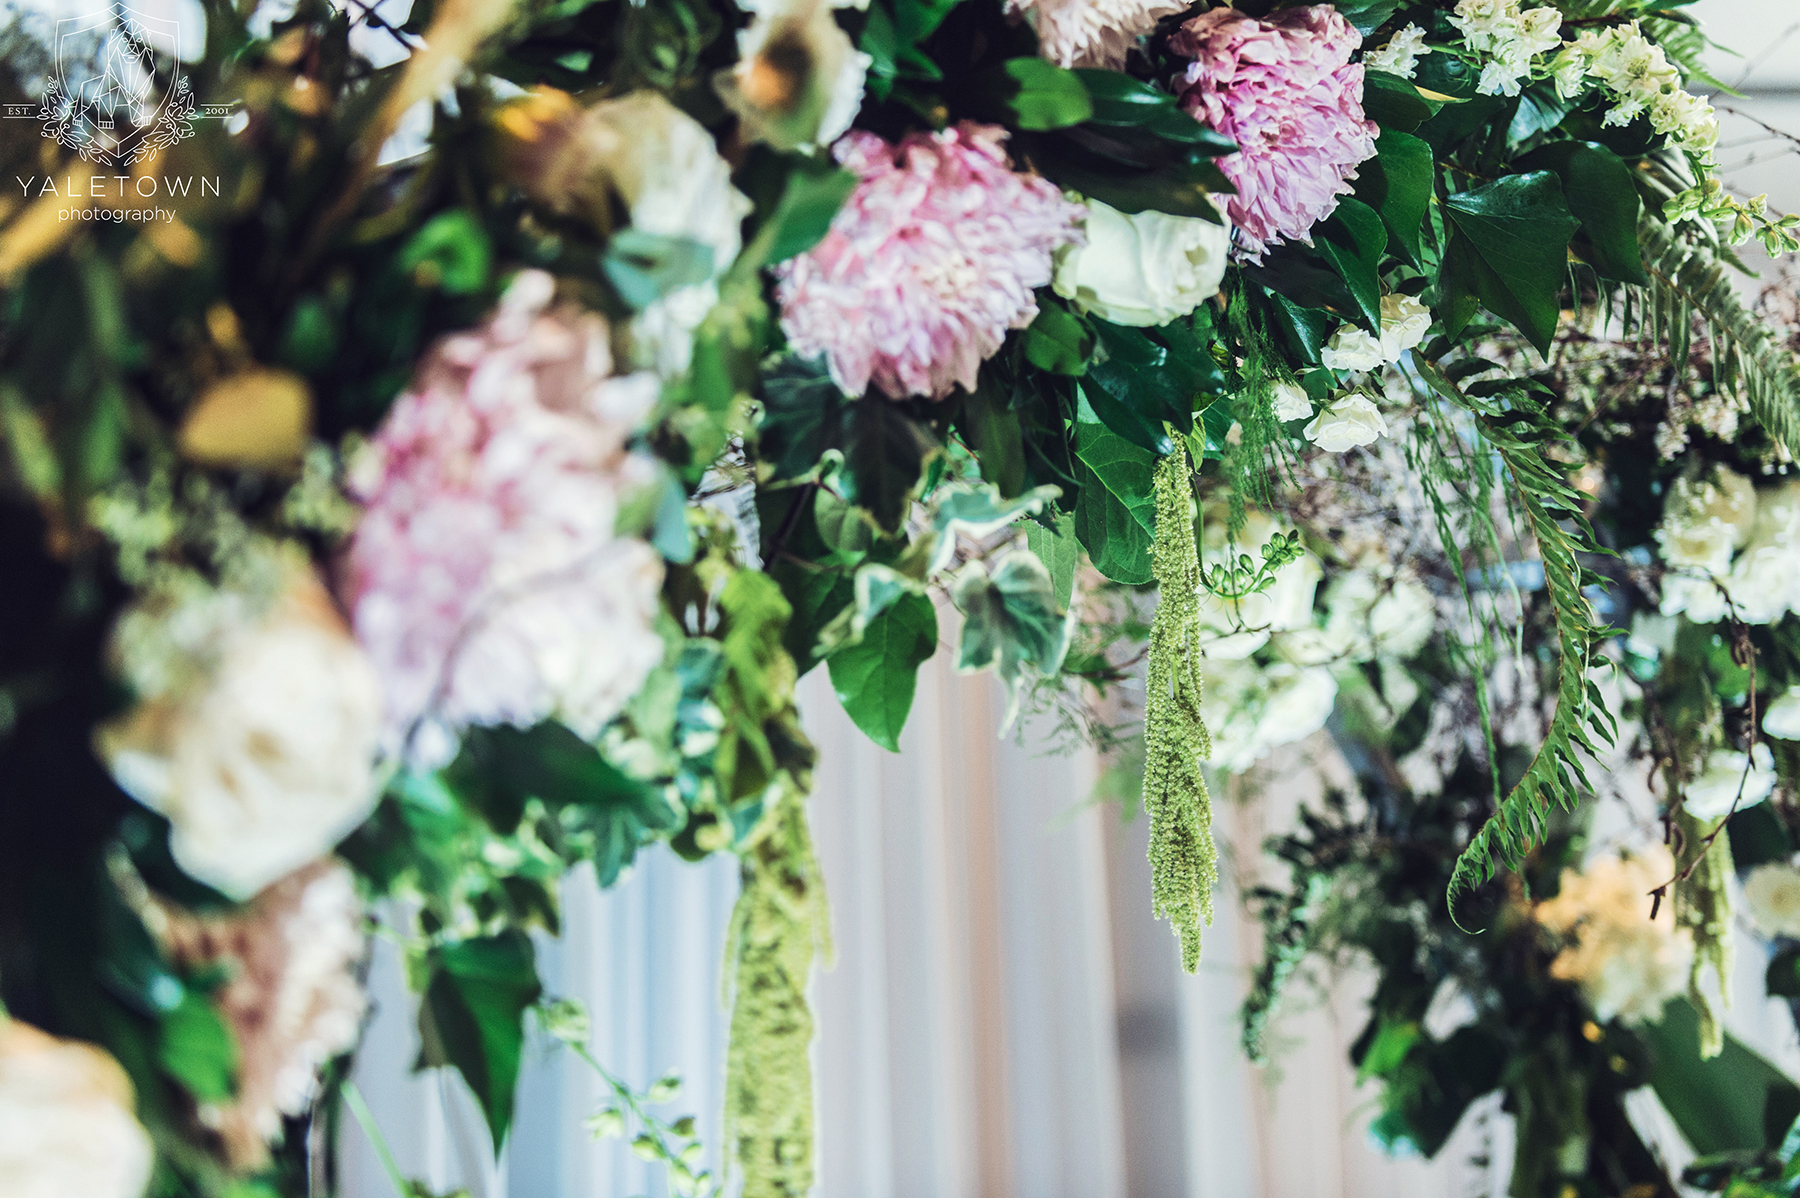 Wedding-Details-Floral-Arch-Rosewood-Hotel-Georgia-Vancouver-Wedding-Yaletown-Photography-photo